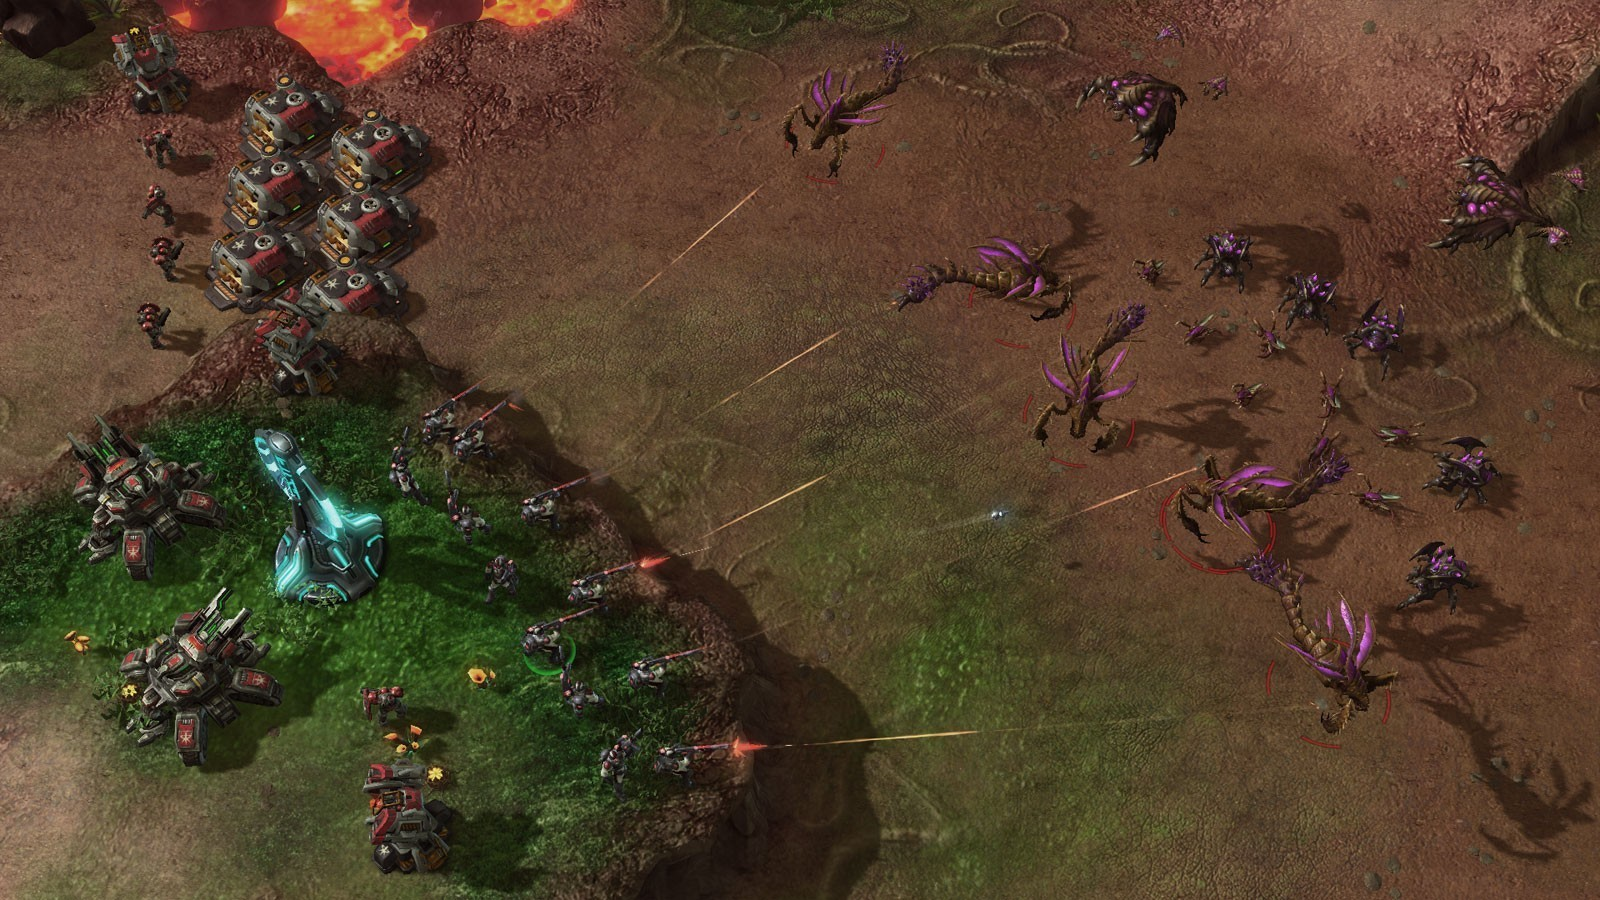 StarCraft 2: Legacy of the Void Terran, Zerg, and Protoss